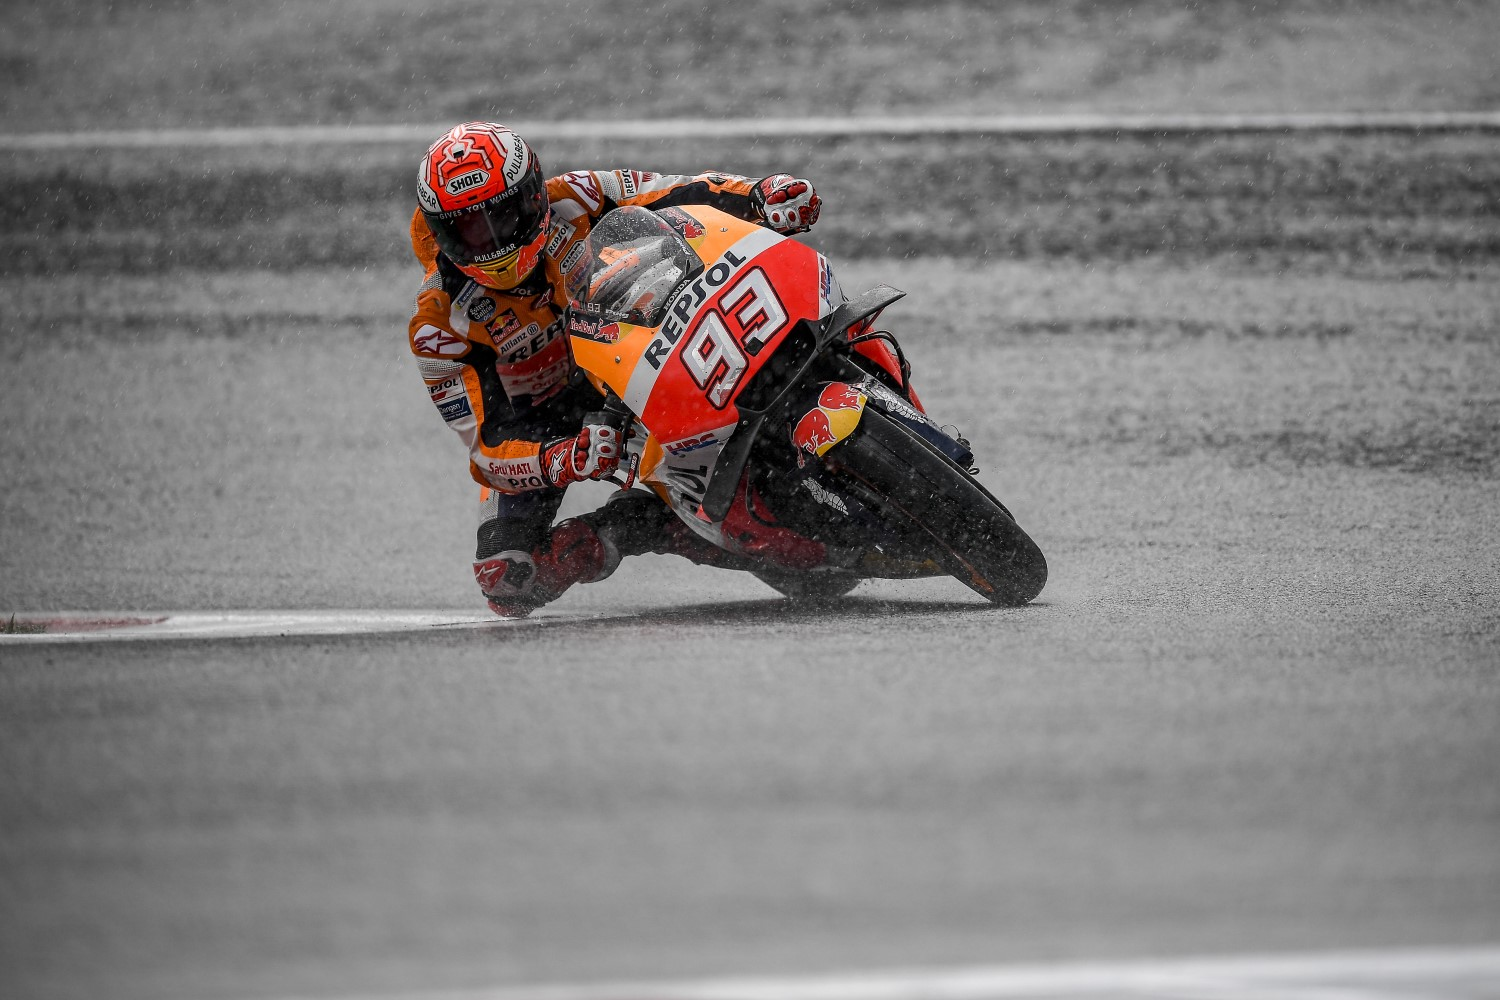 Marquez schools the rest in the rain